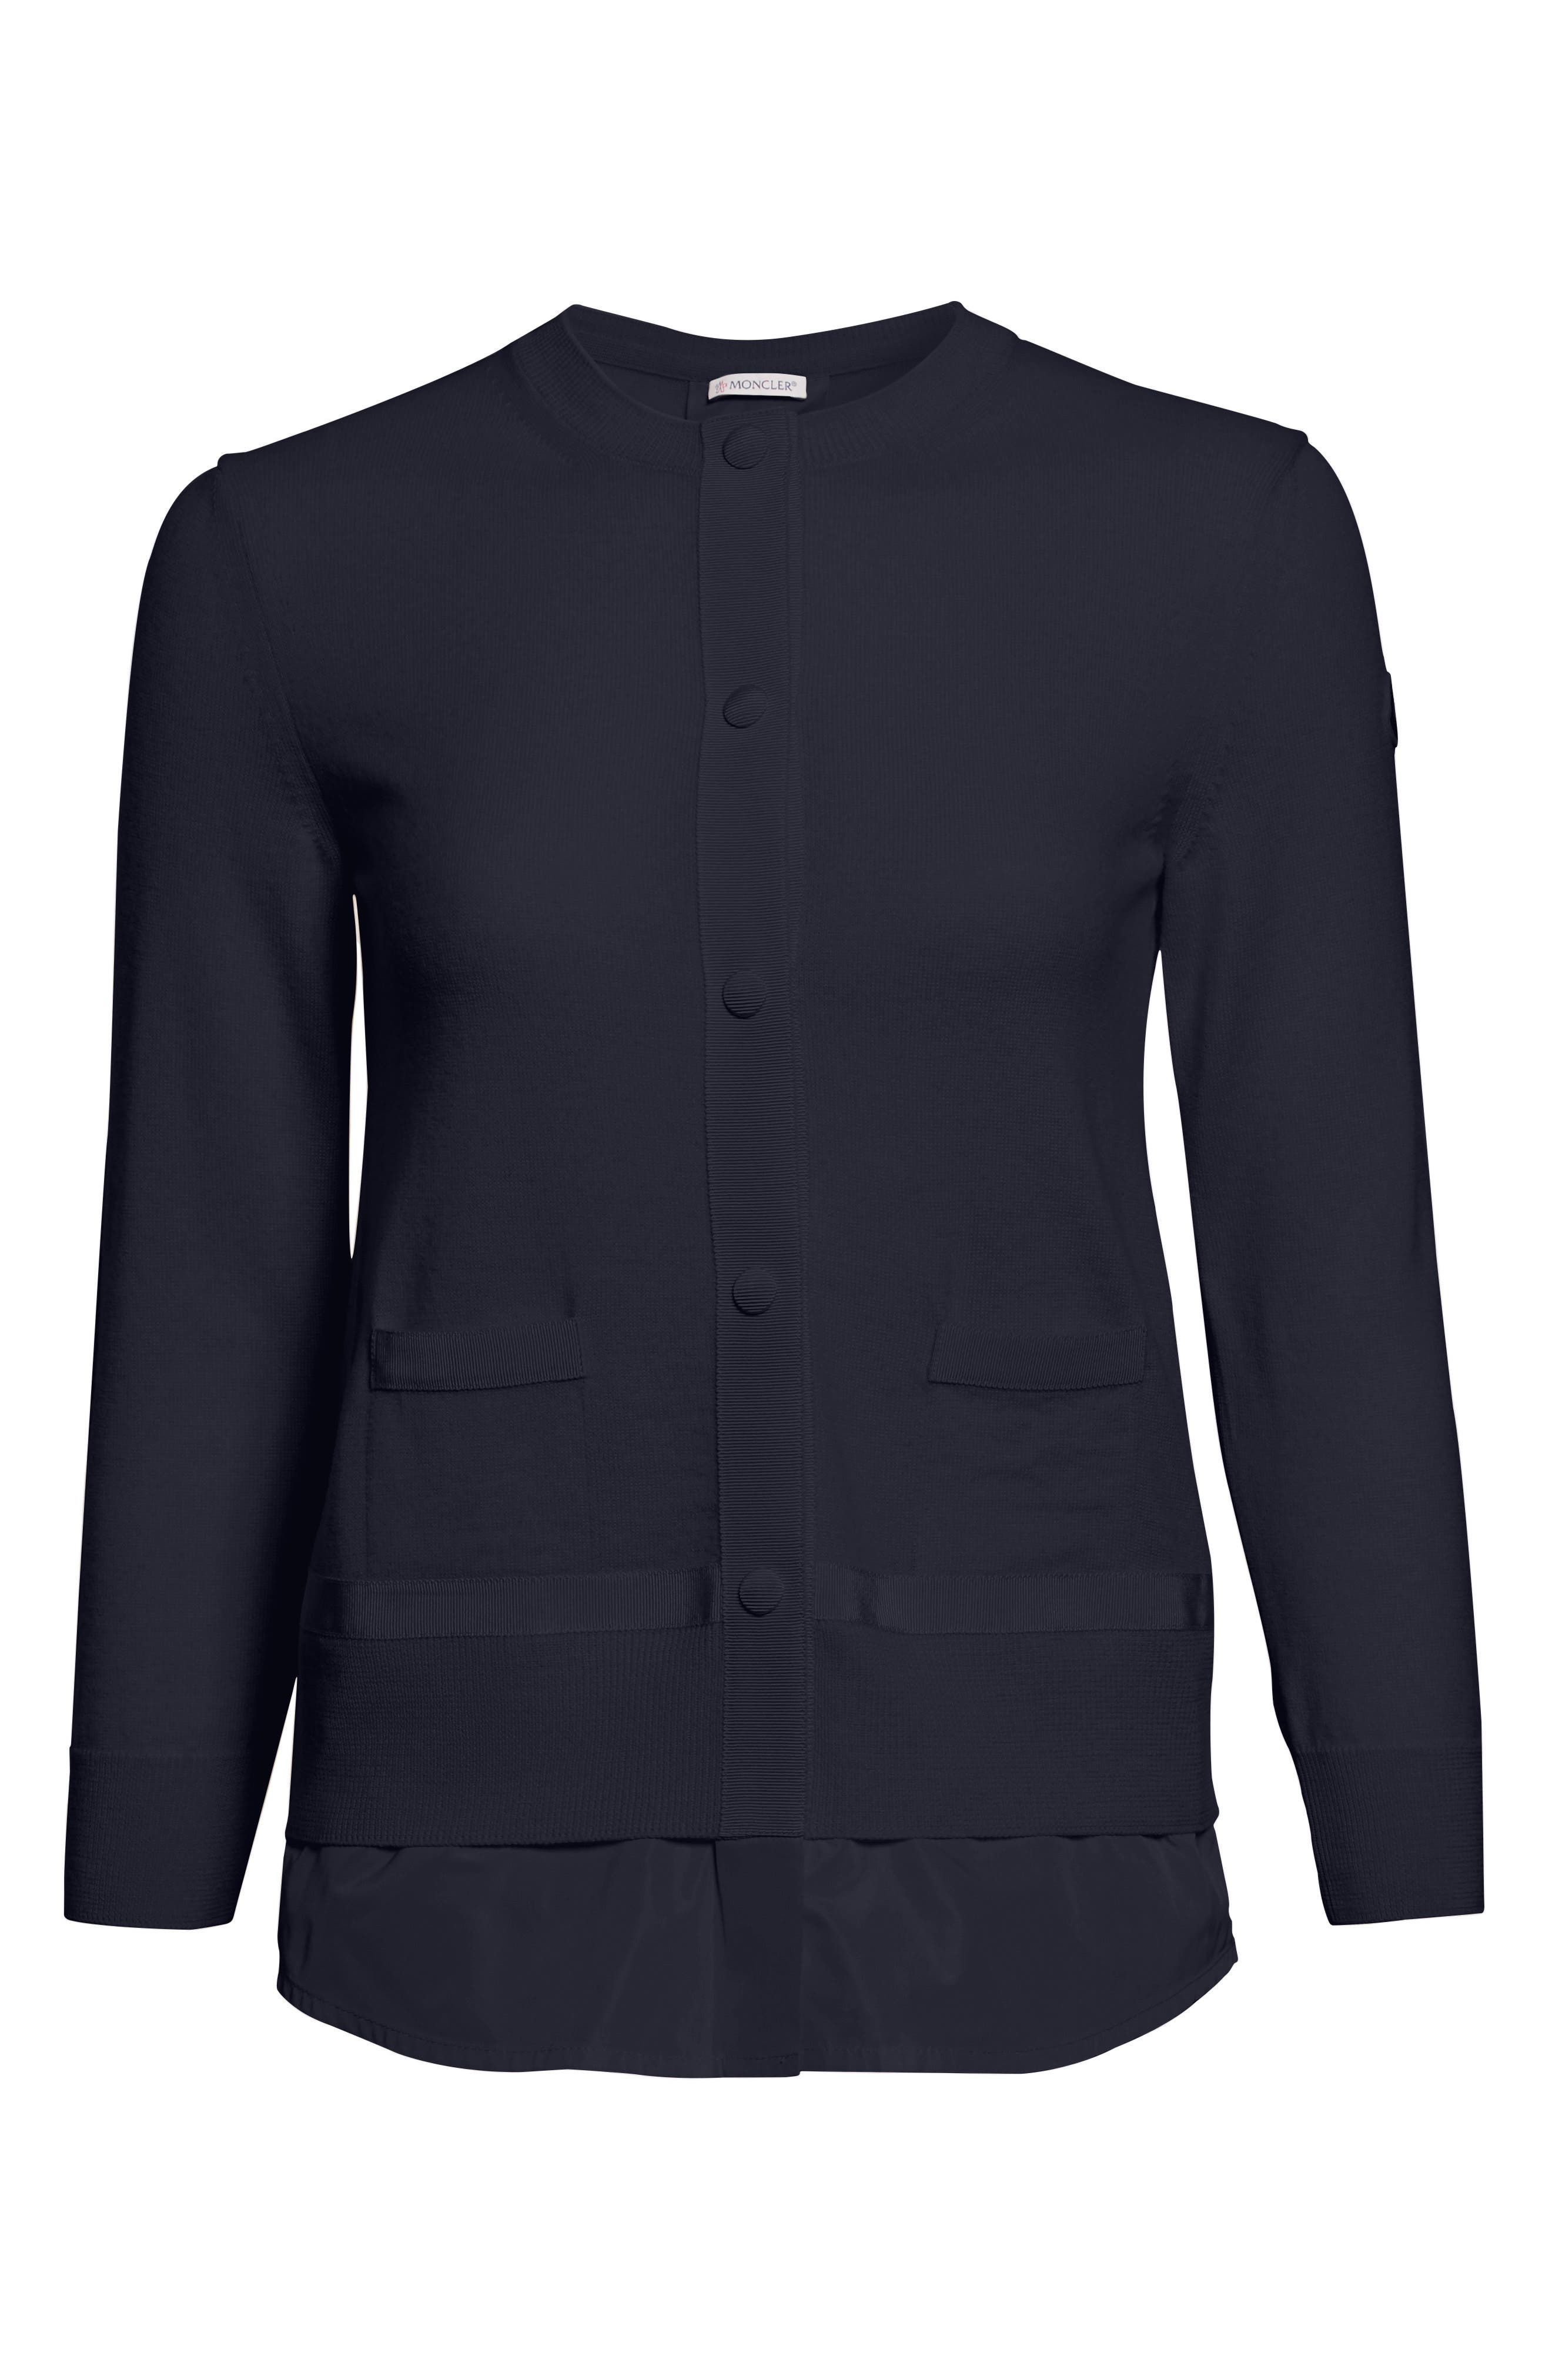 Tricot Cardigan,                             Alternate thumbnail 6, color,                             Navy